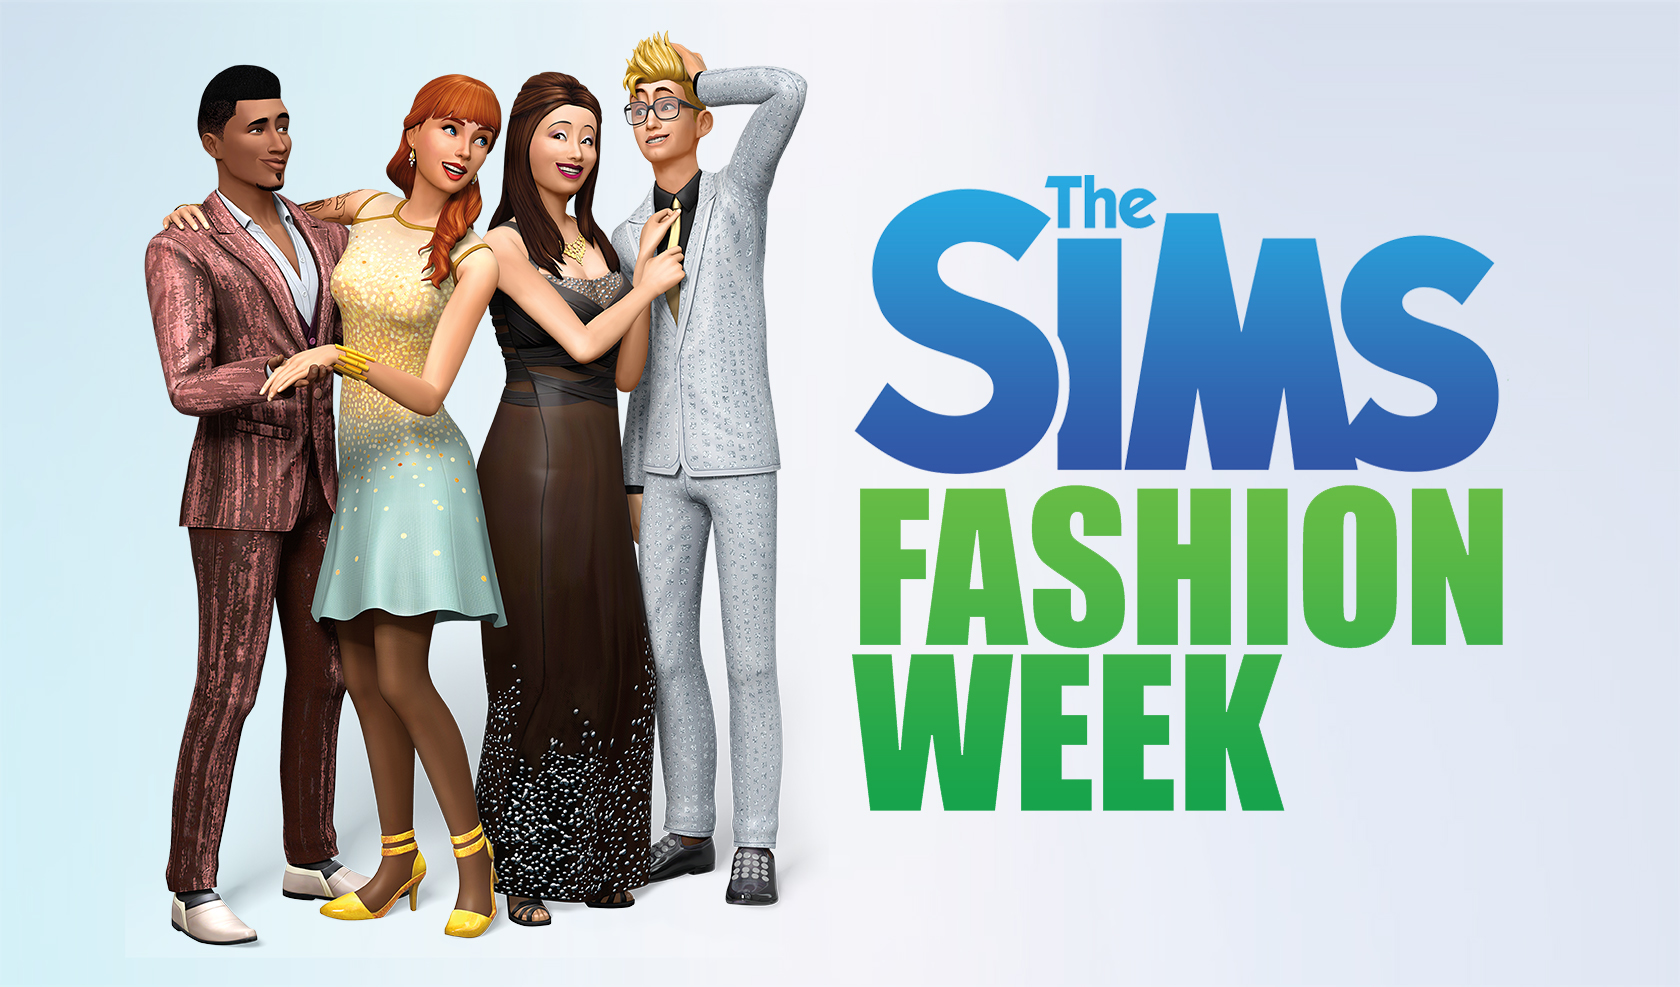 The Sims Fashion Week